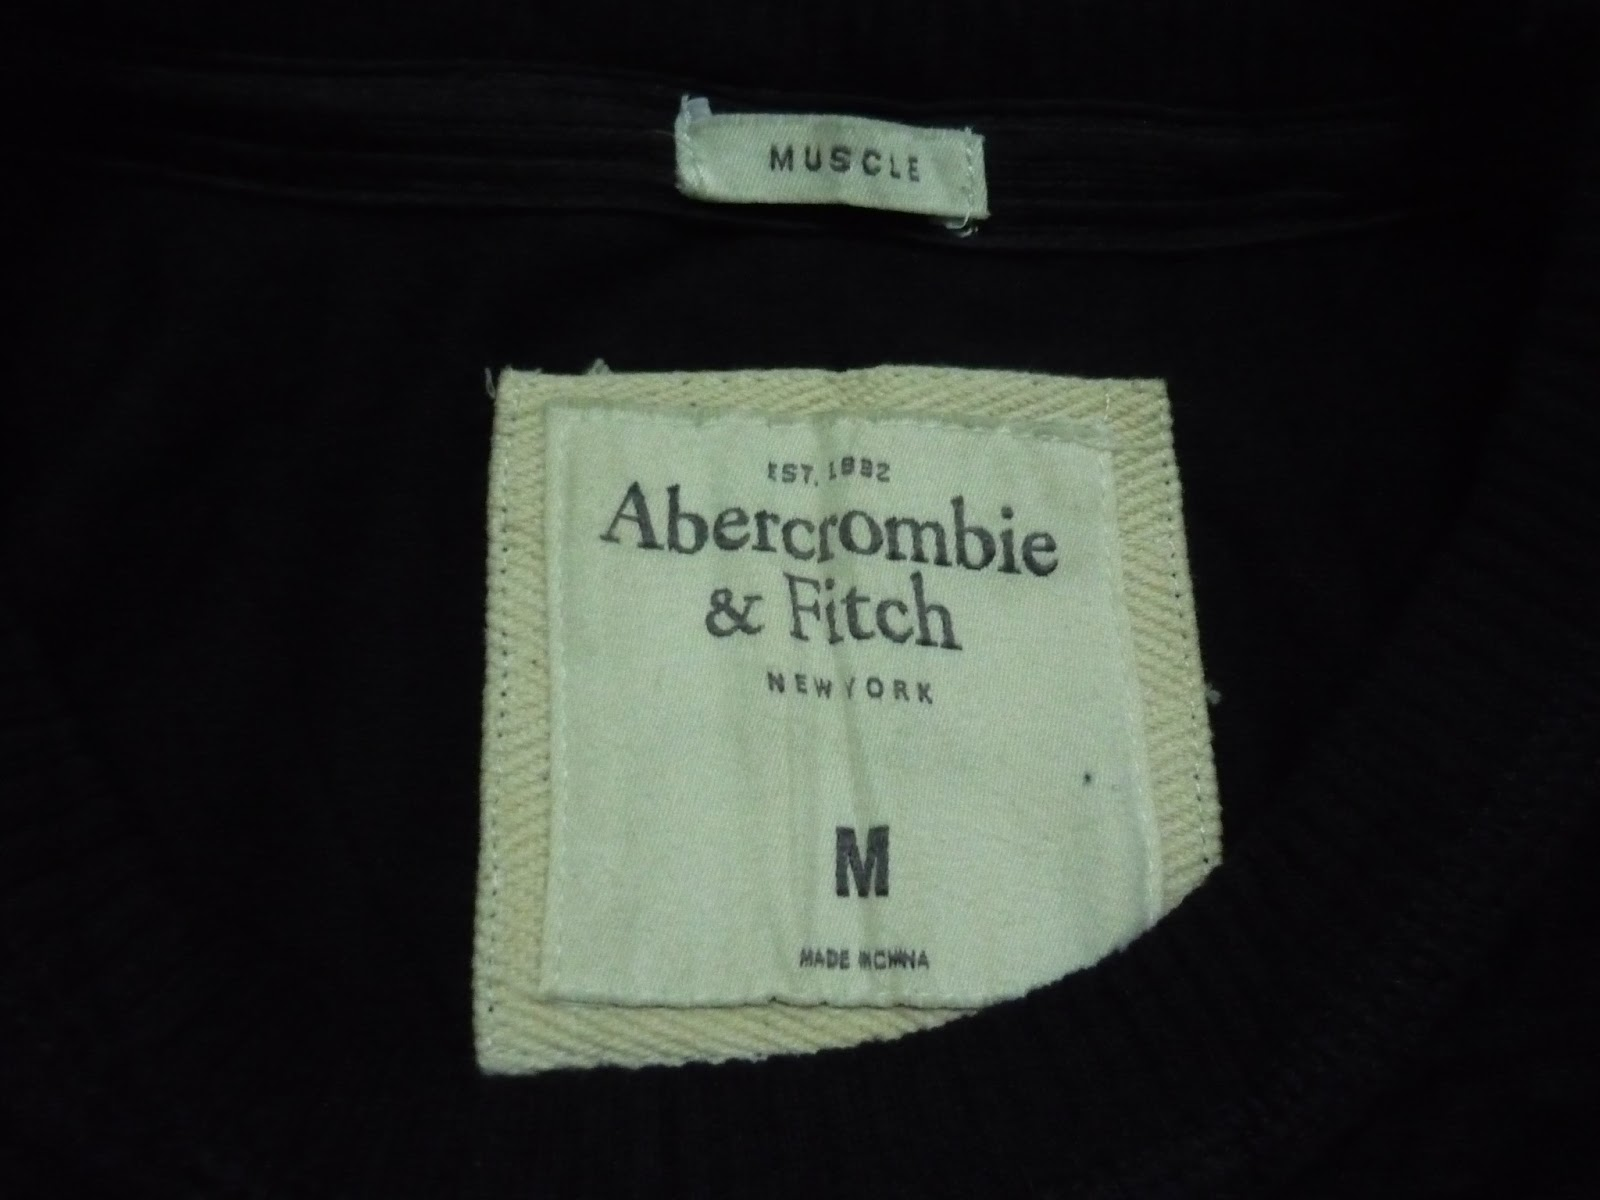 Abercrombie And Fitch Clothing Abercrombie And Fitch Hoodies Abercrombie And Fitch Jackets Abercrombie And Fitch Sweater: Clayback Bush Thrift Store: [T Shirt] Abercrombie & Fitch